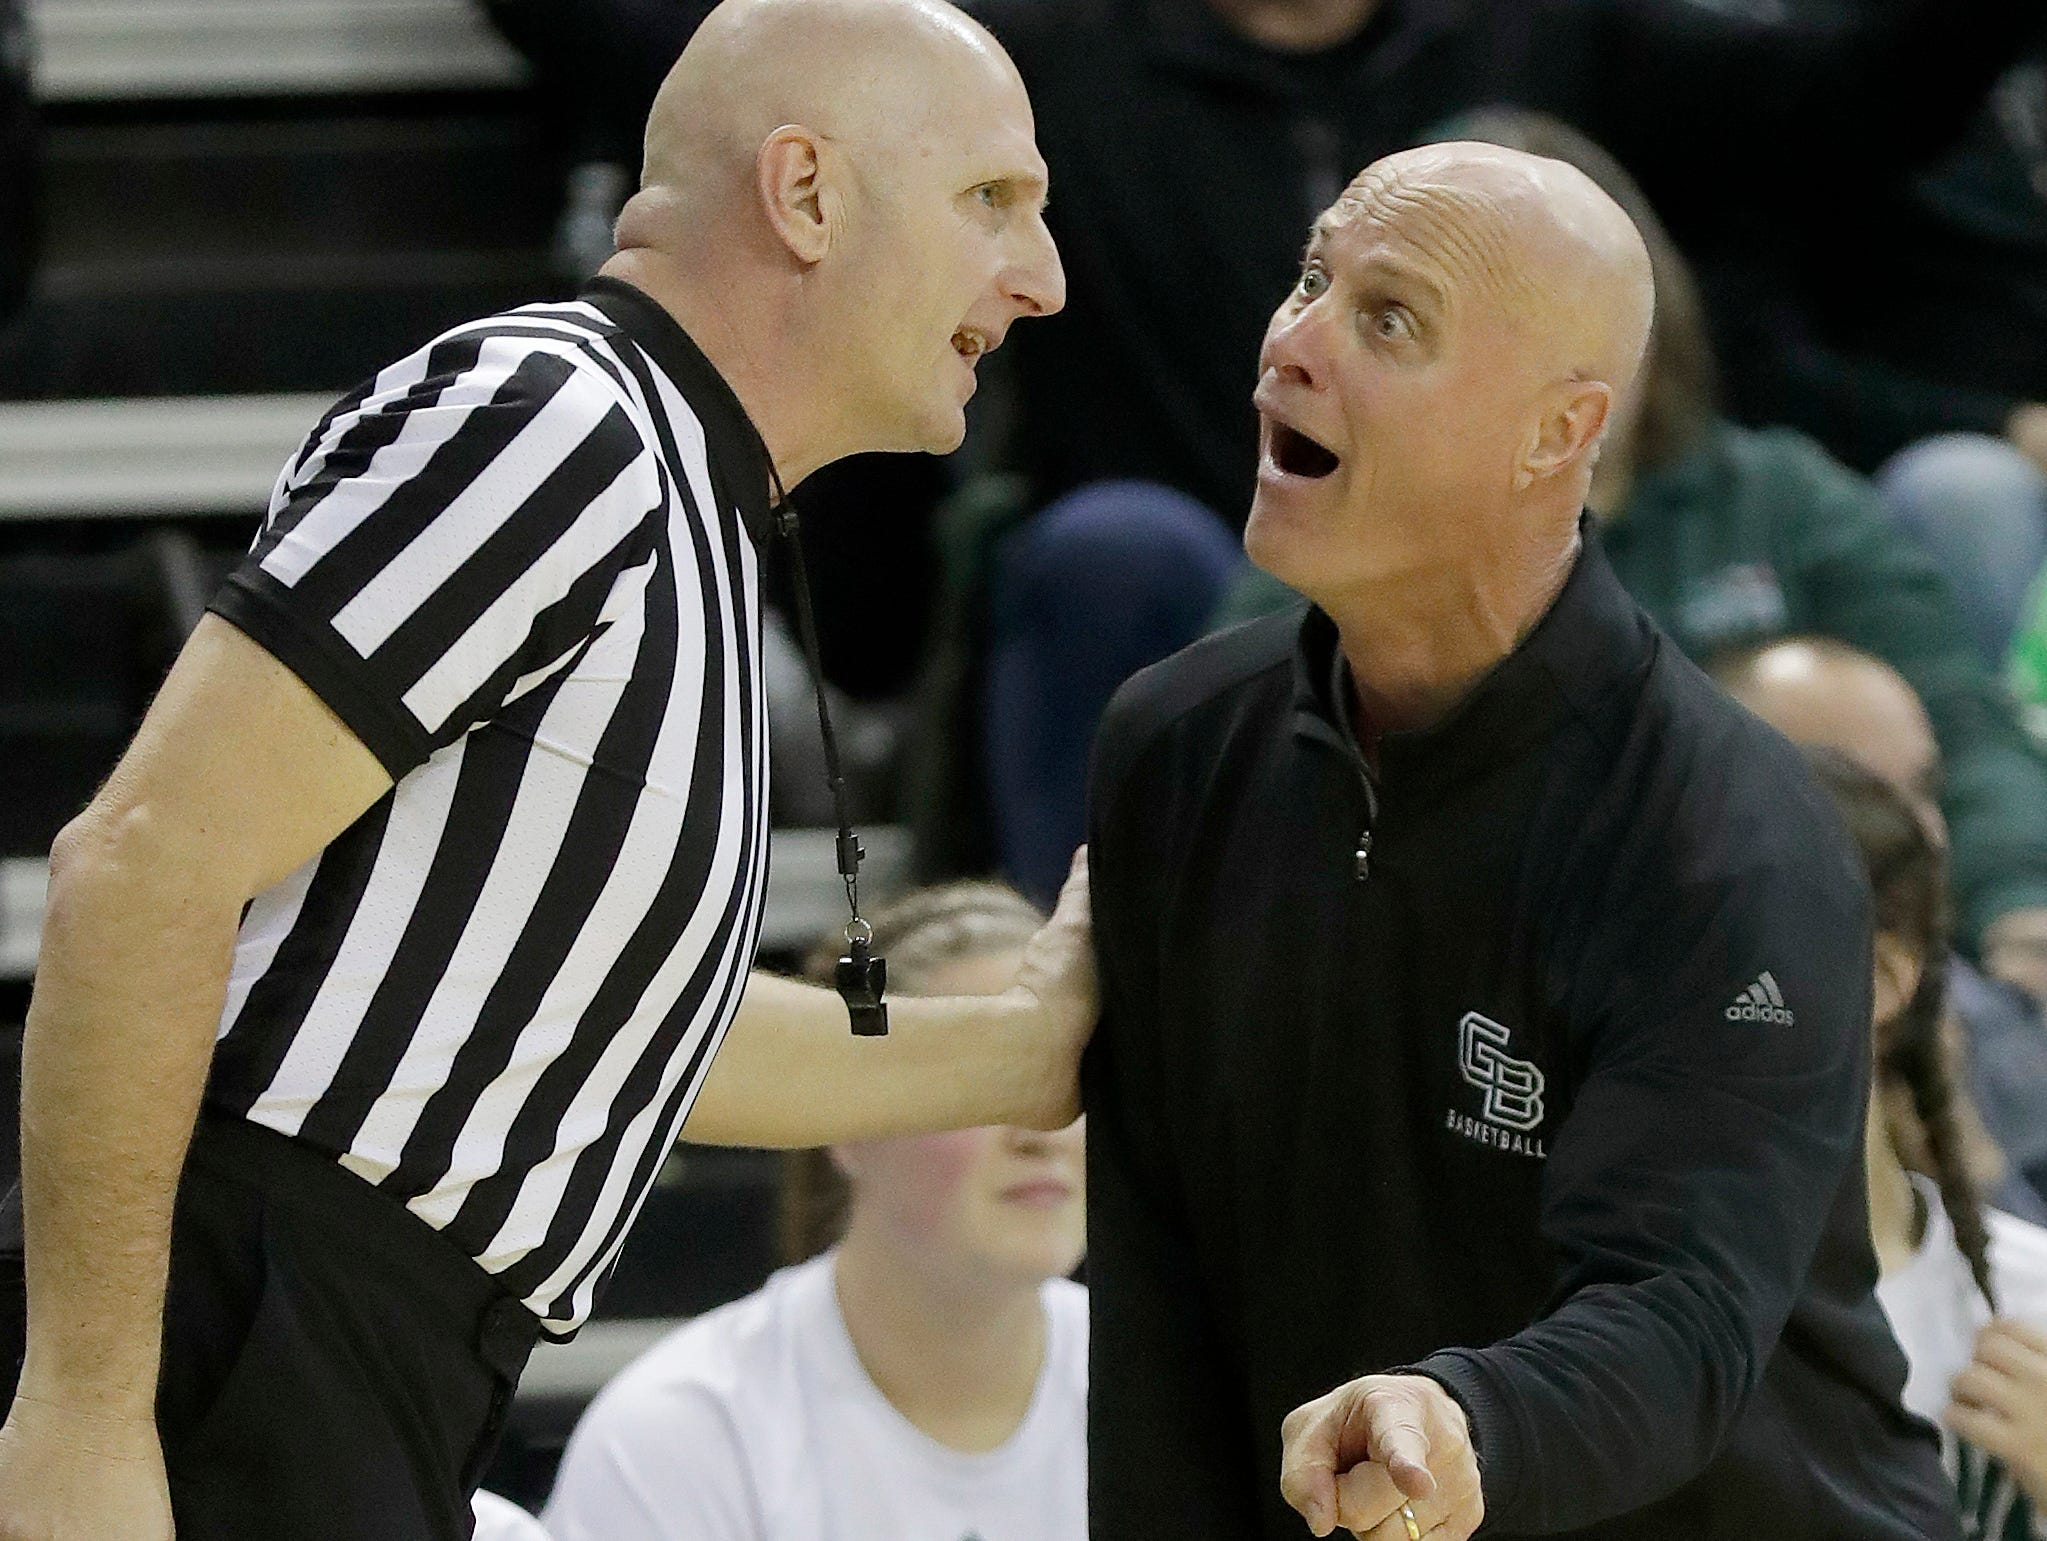 Green Bay Phoenix head coach Kevin Borseth remonstrates with the referee during the game against Wisconsin at the Kress Center, Saturday, December 8, 2018 in Green Bay, Wis.